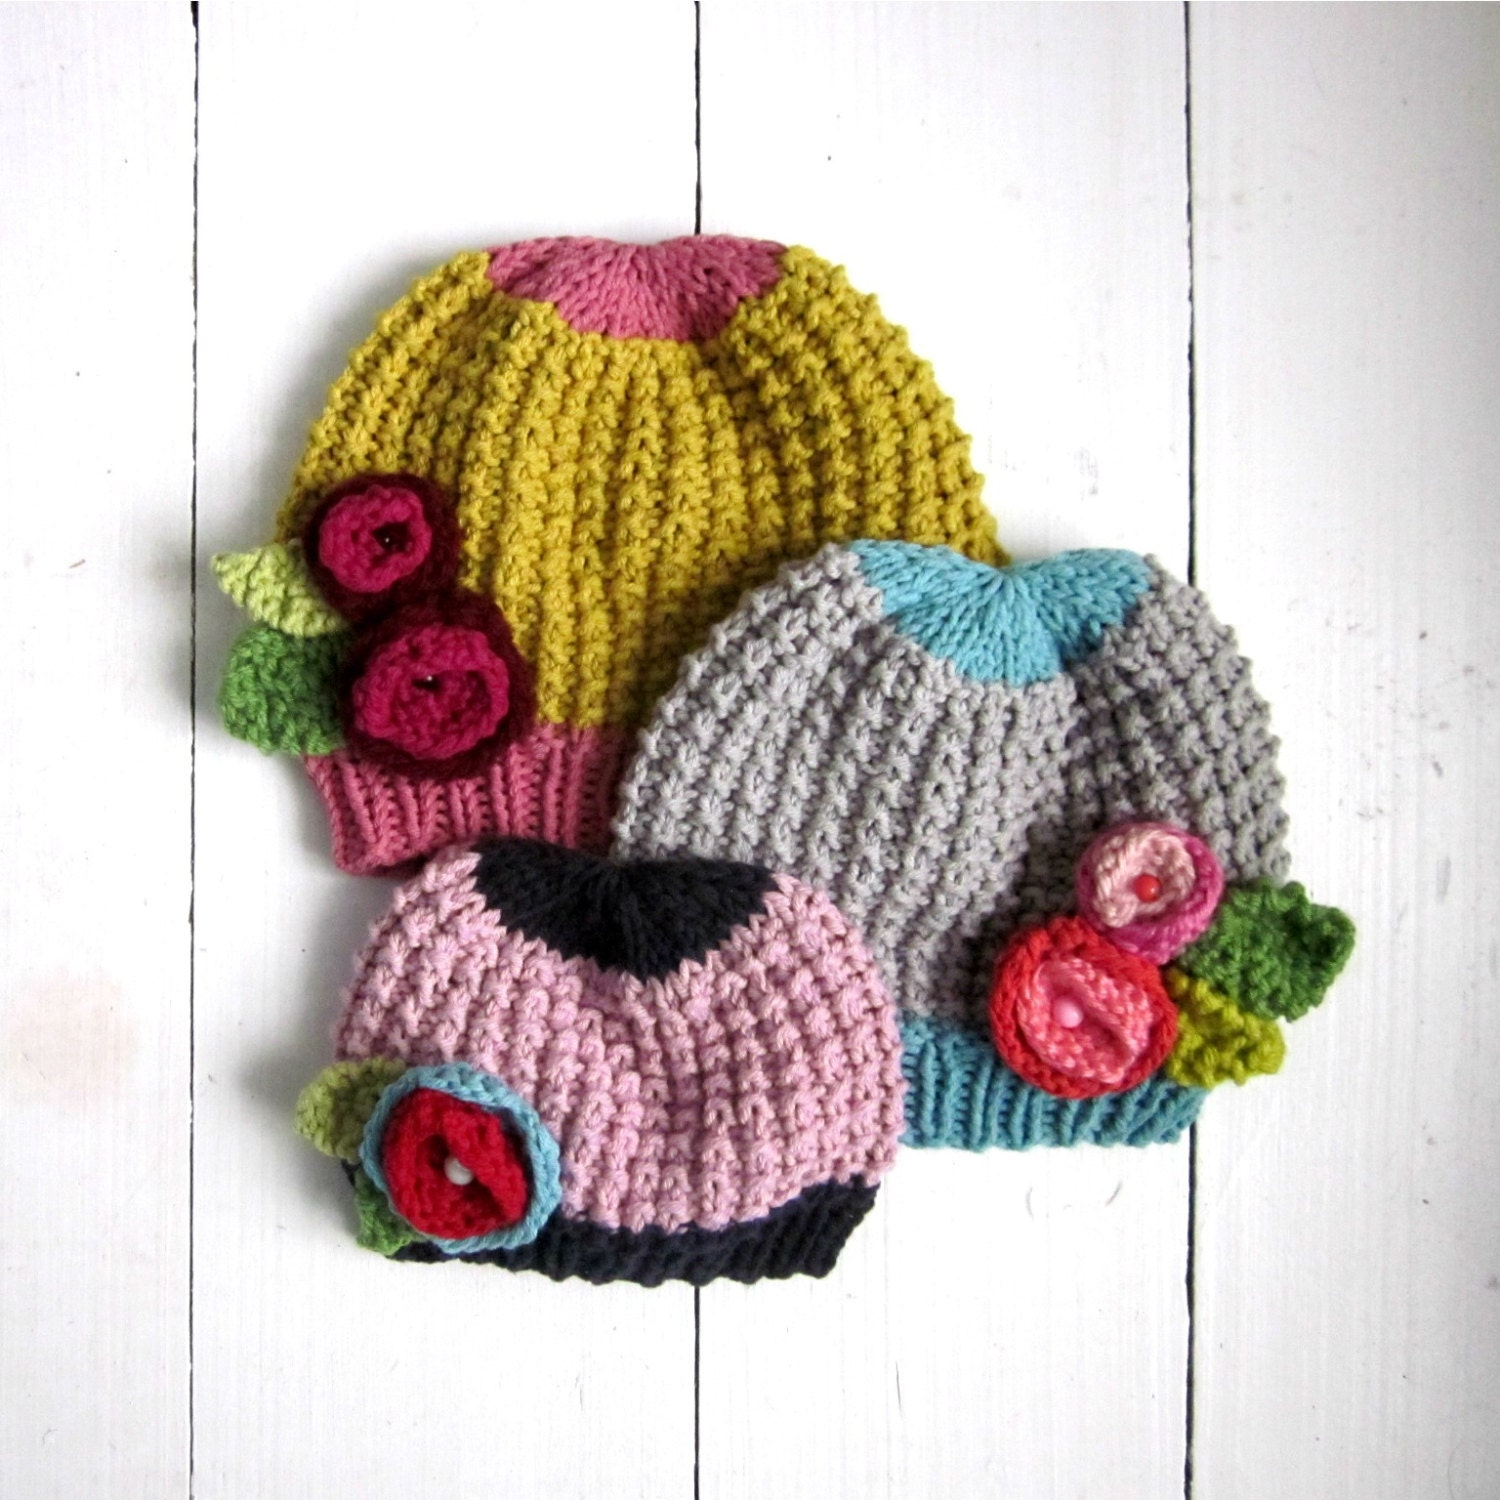 Knitting Pattern For Flowers On Hat : KNITTING PATTERN baby girl hat with flowers PDF instant